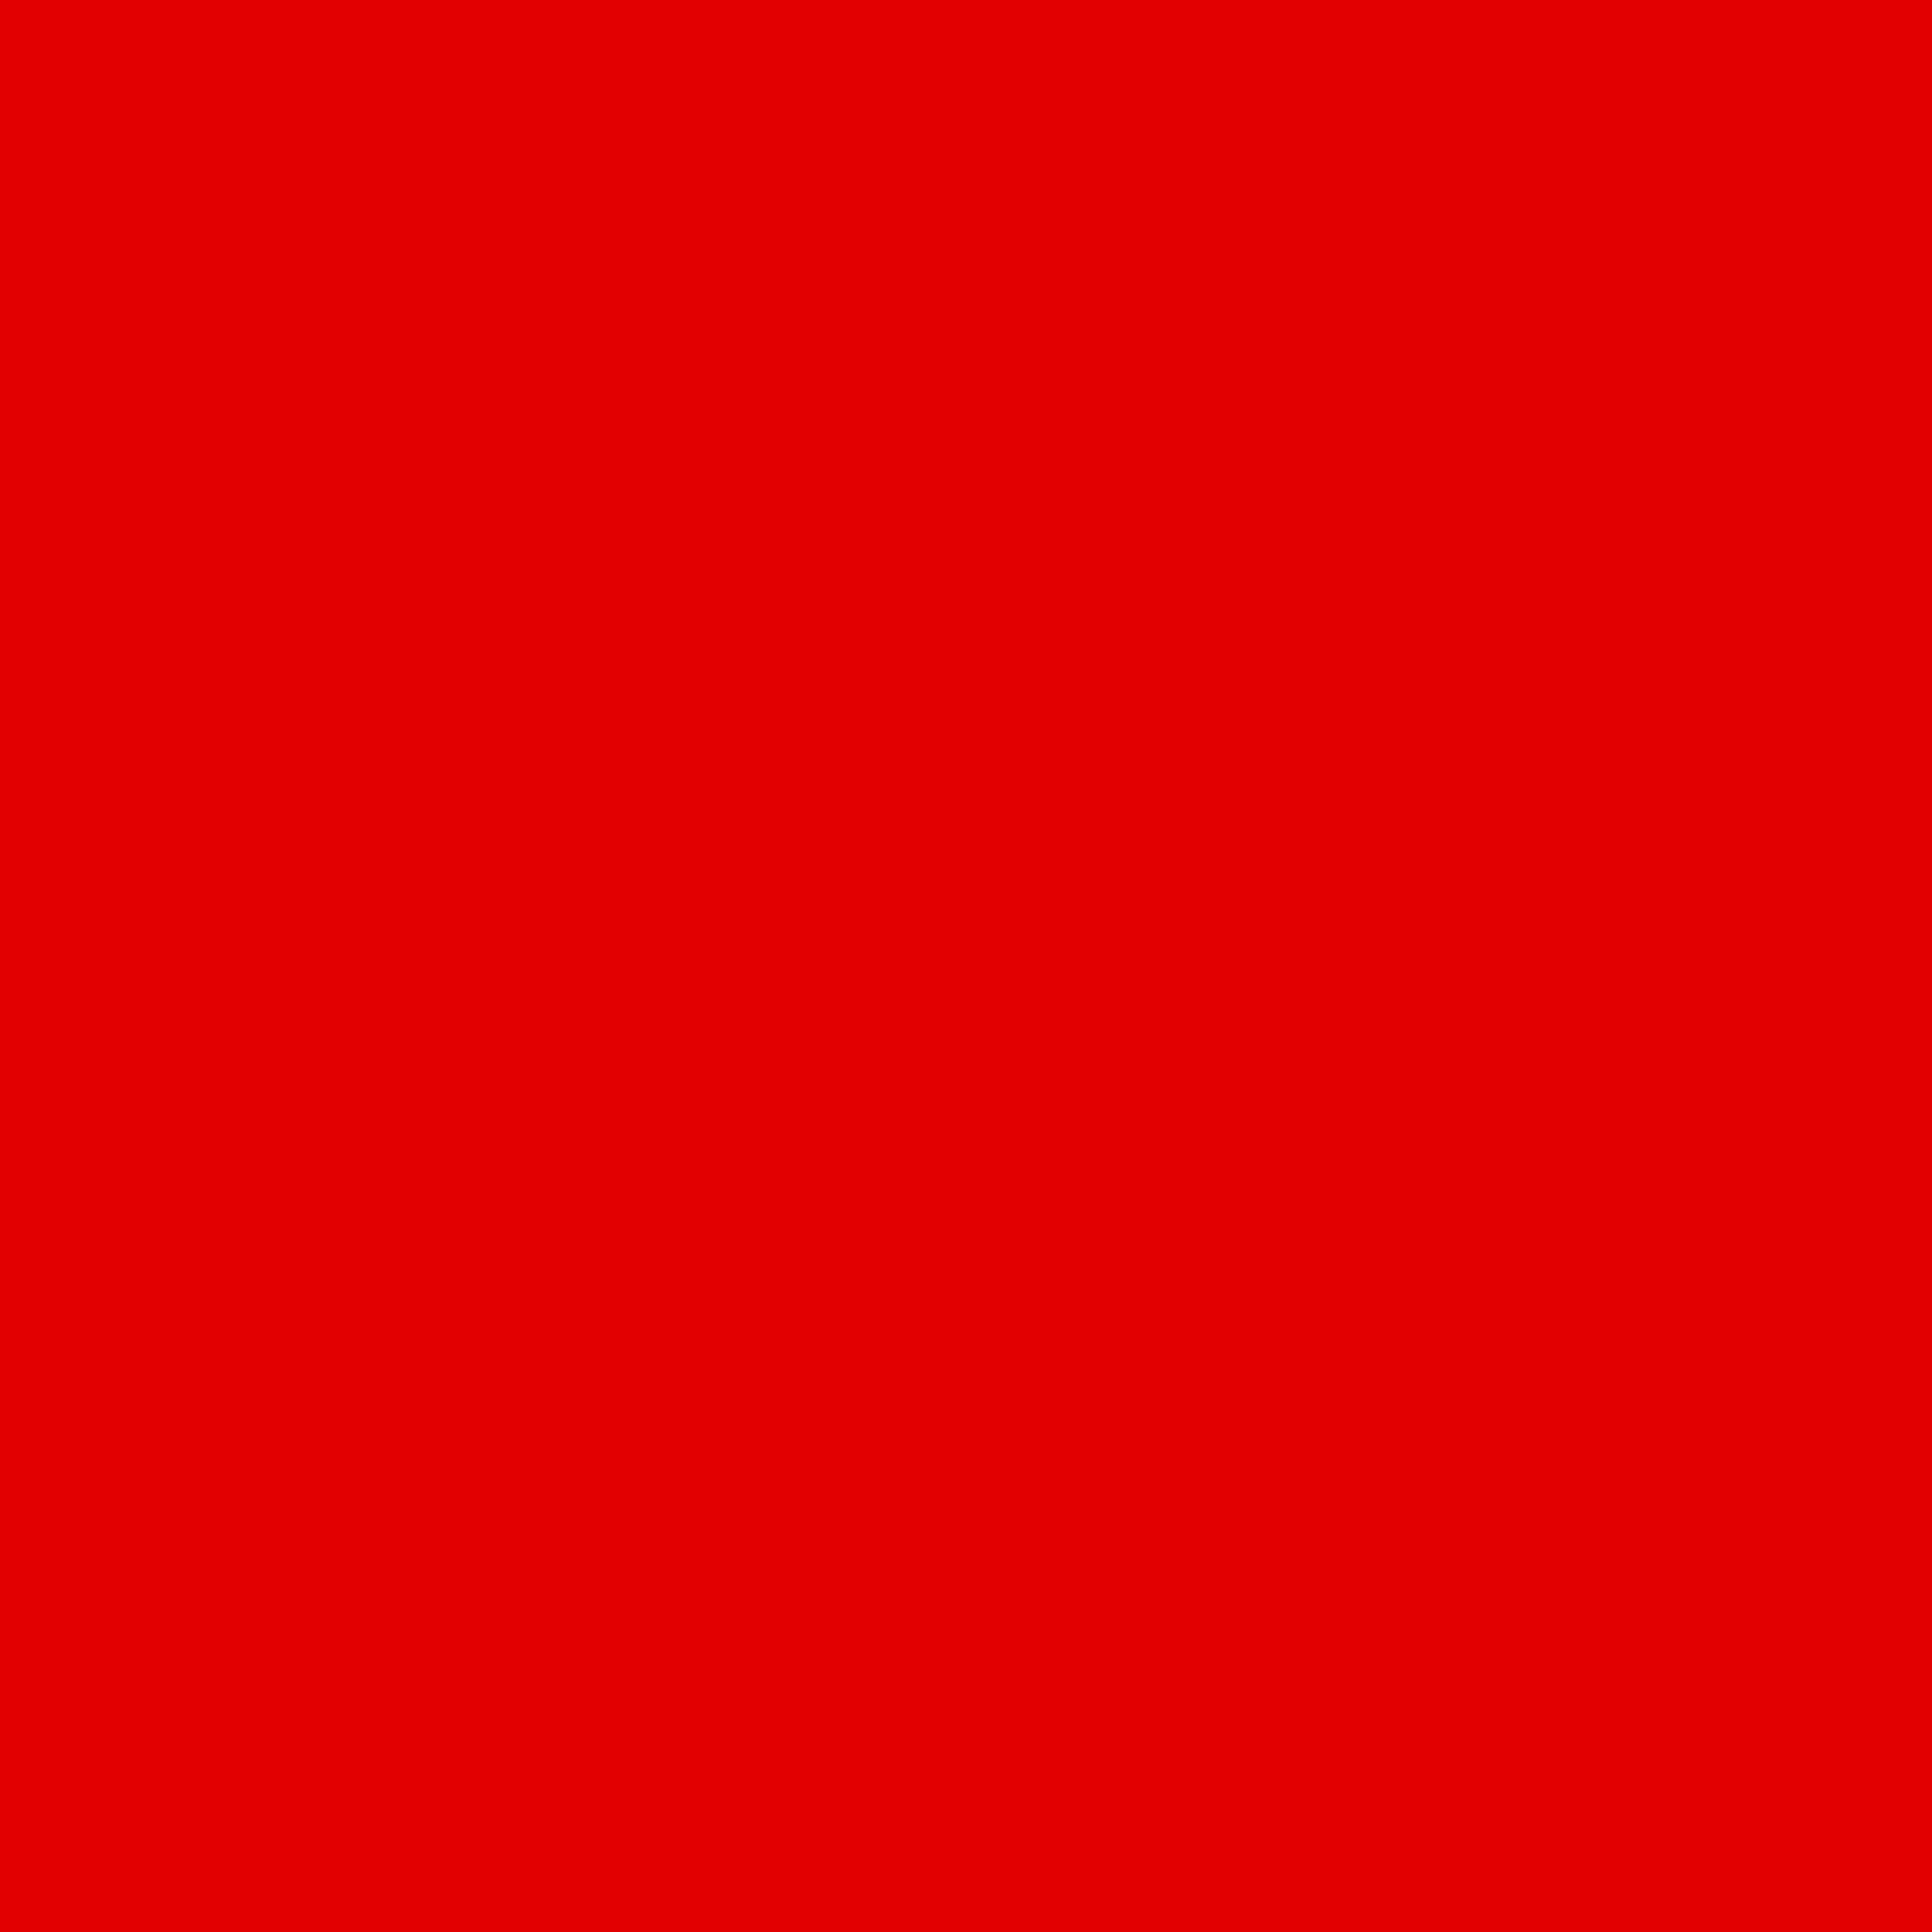 Red, Union